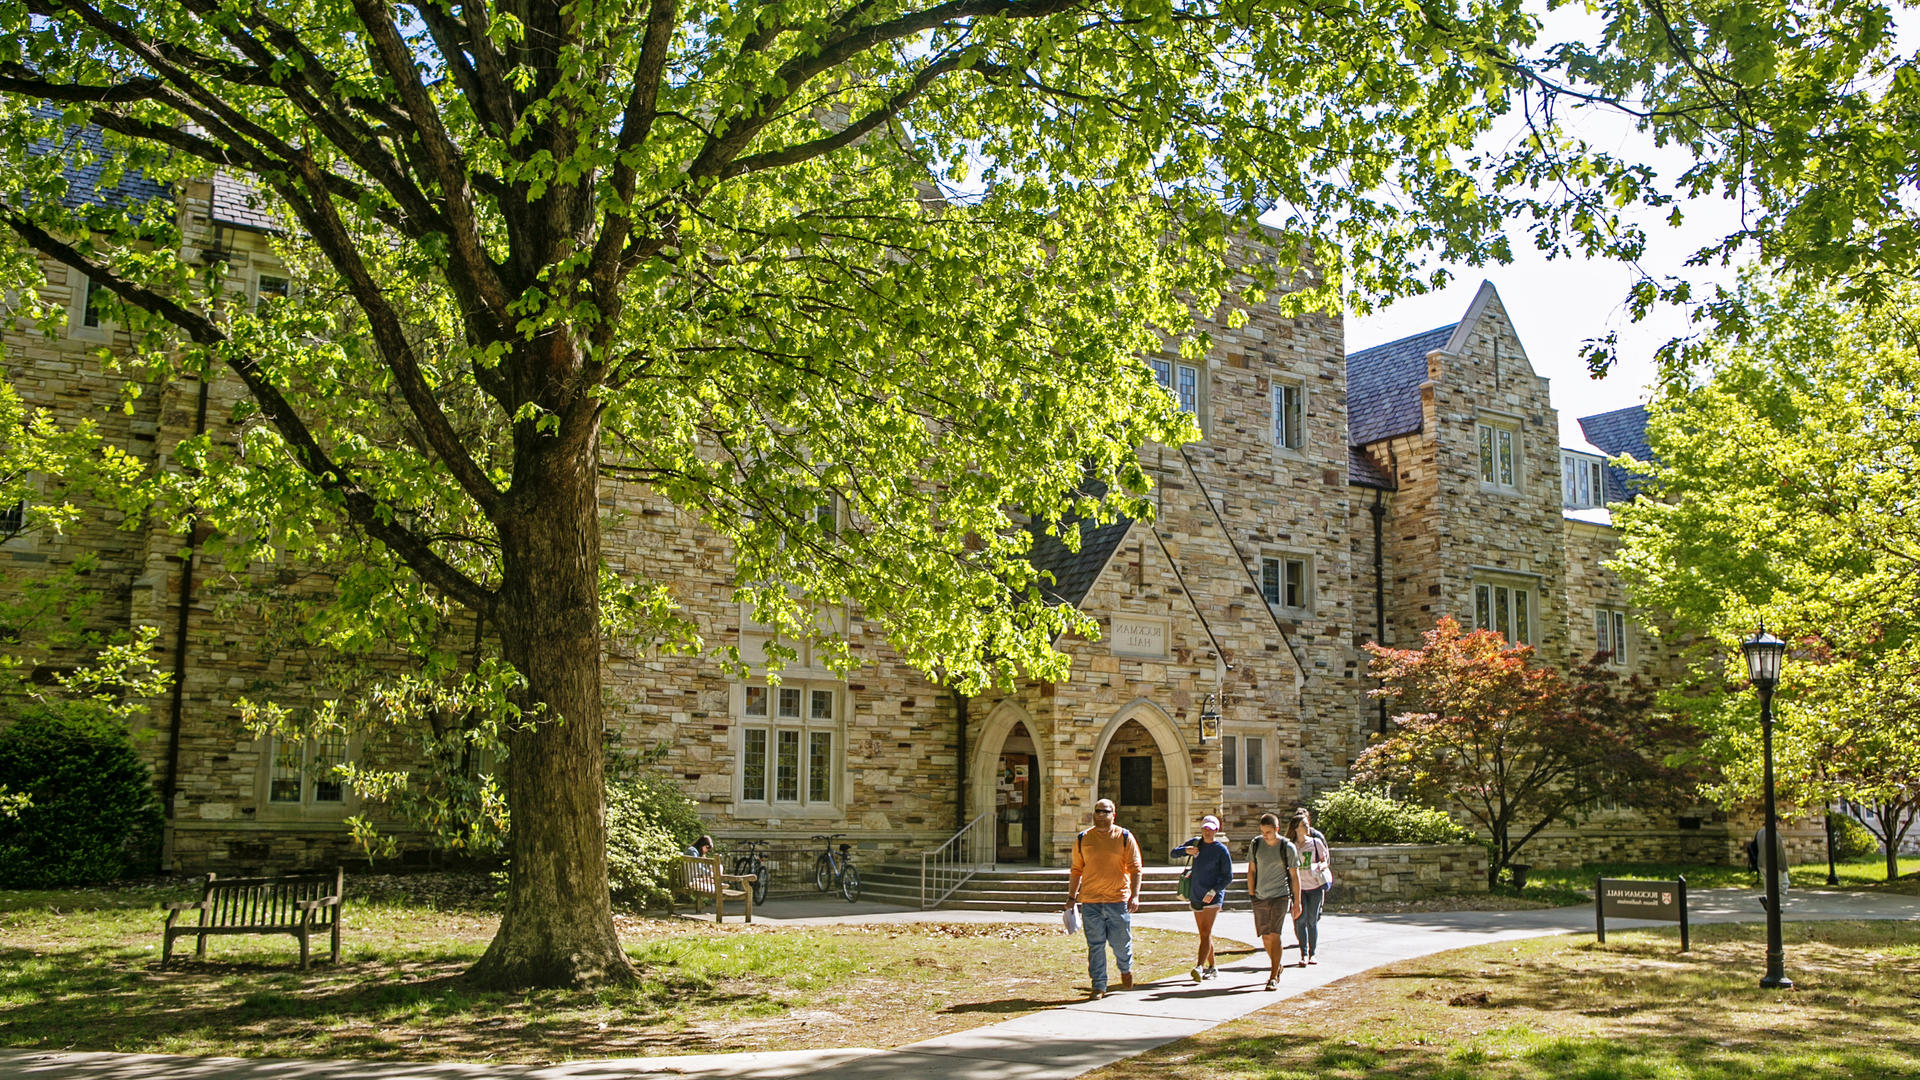 a Gothic stone building with a sign saying Buckman Hall